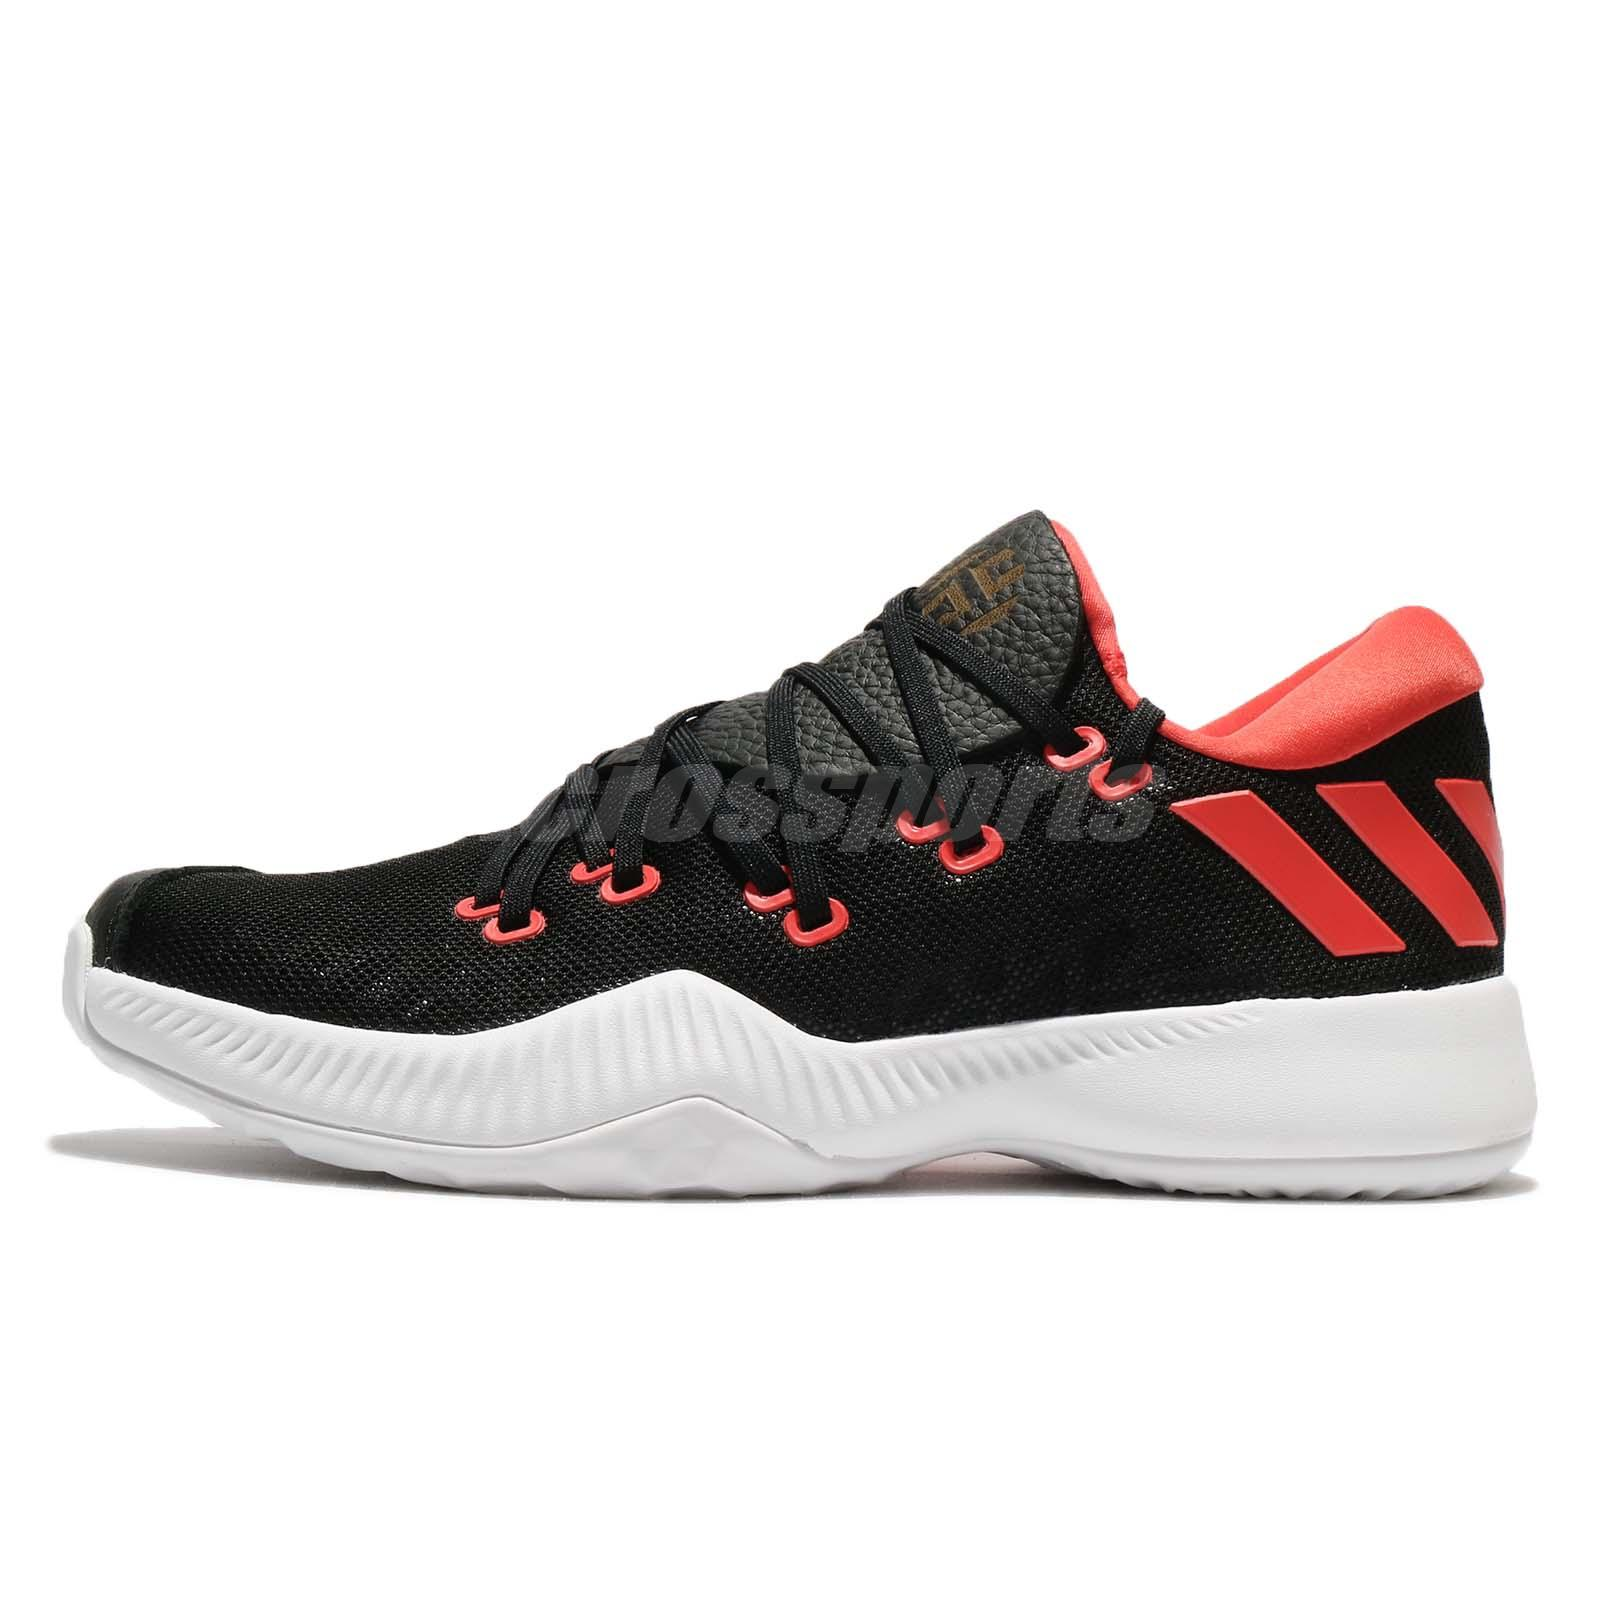 64b39ba416be adidas Harden B E James Bounce Black Red Men Basketball Shoes Sneakers  AC7820